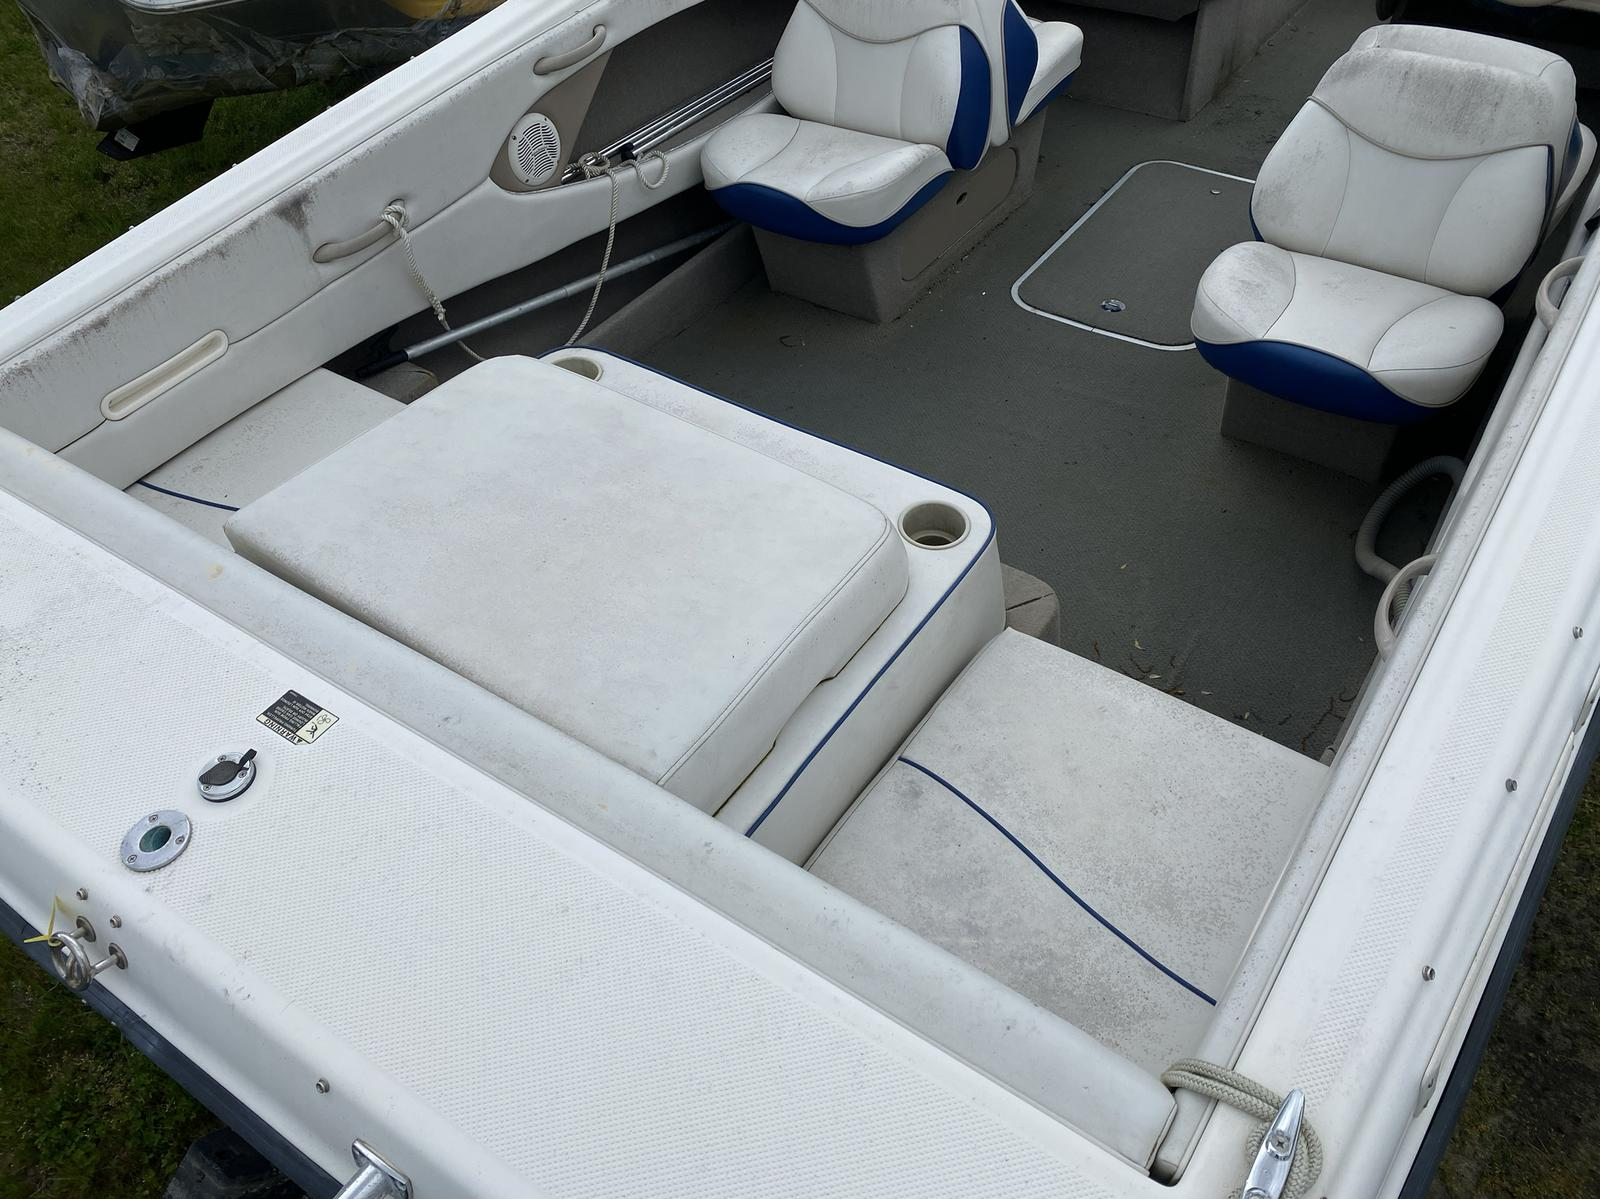 2004 Bayliner boat for sale, model of the boat is 215BR Classic21 & Image # 5 of 9